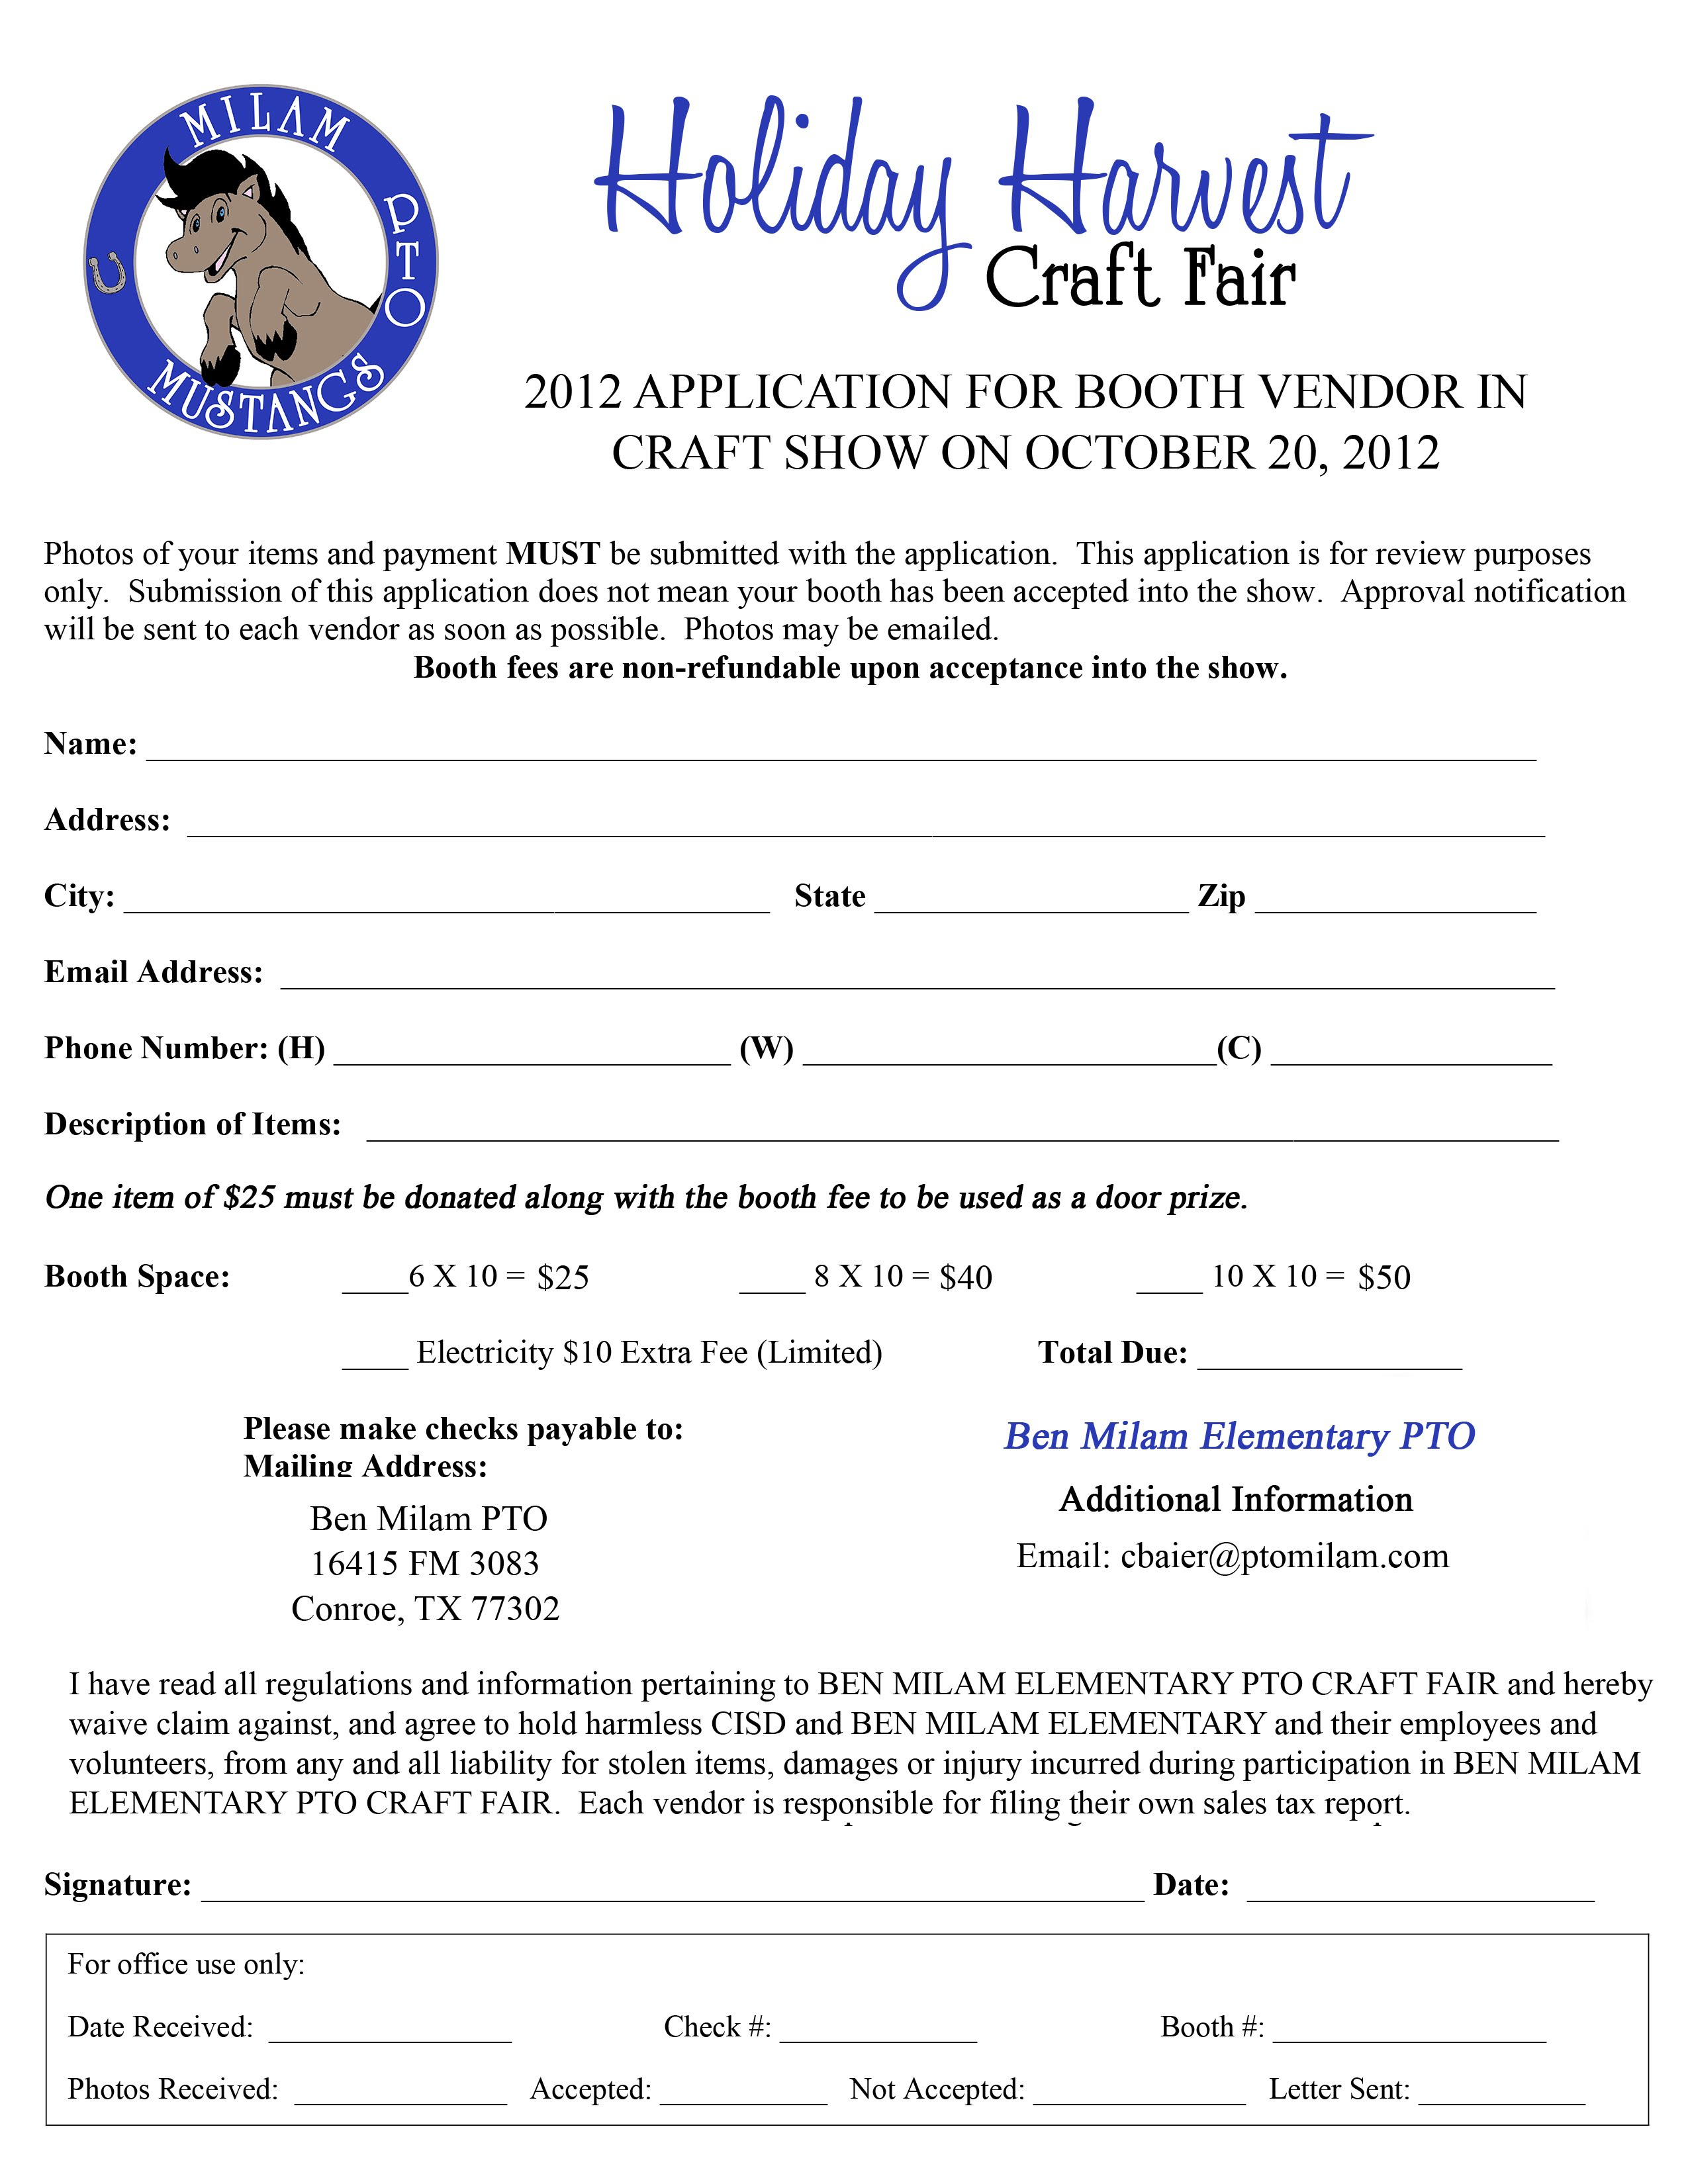 Craft Show Application Form Template